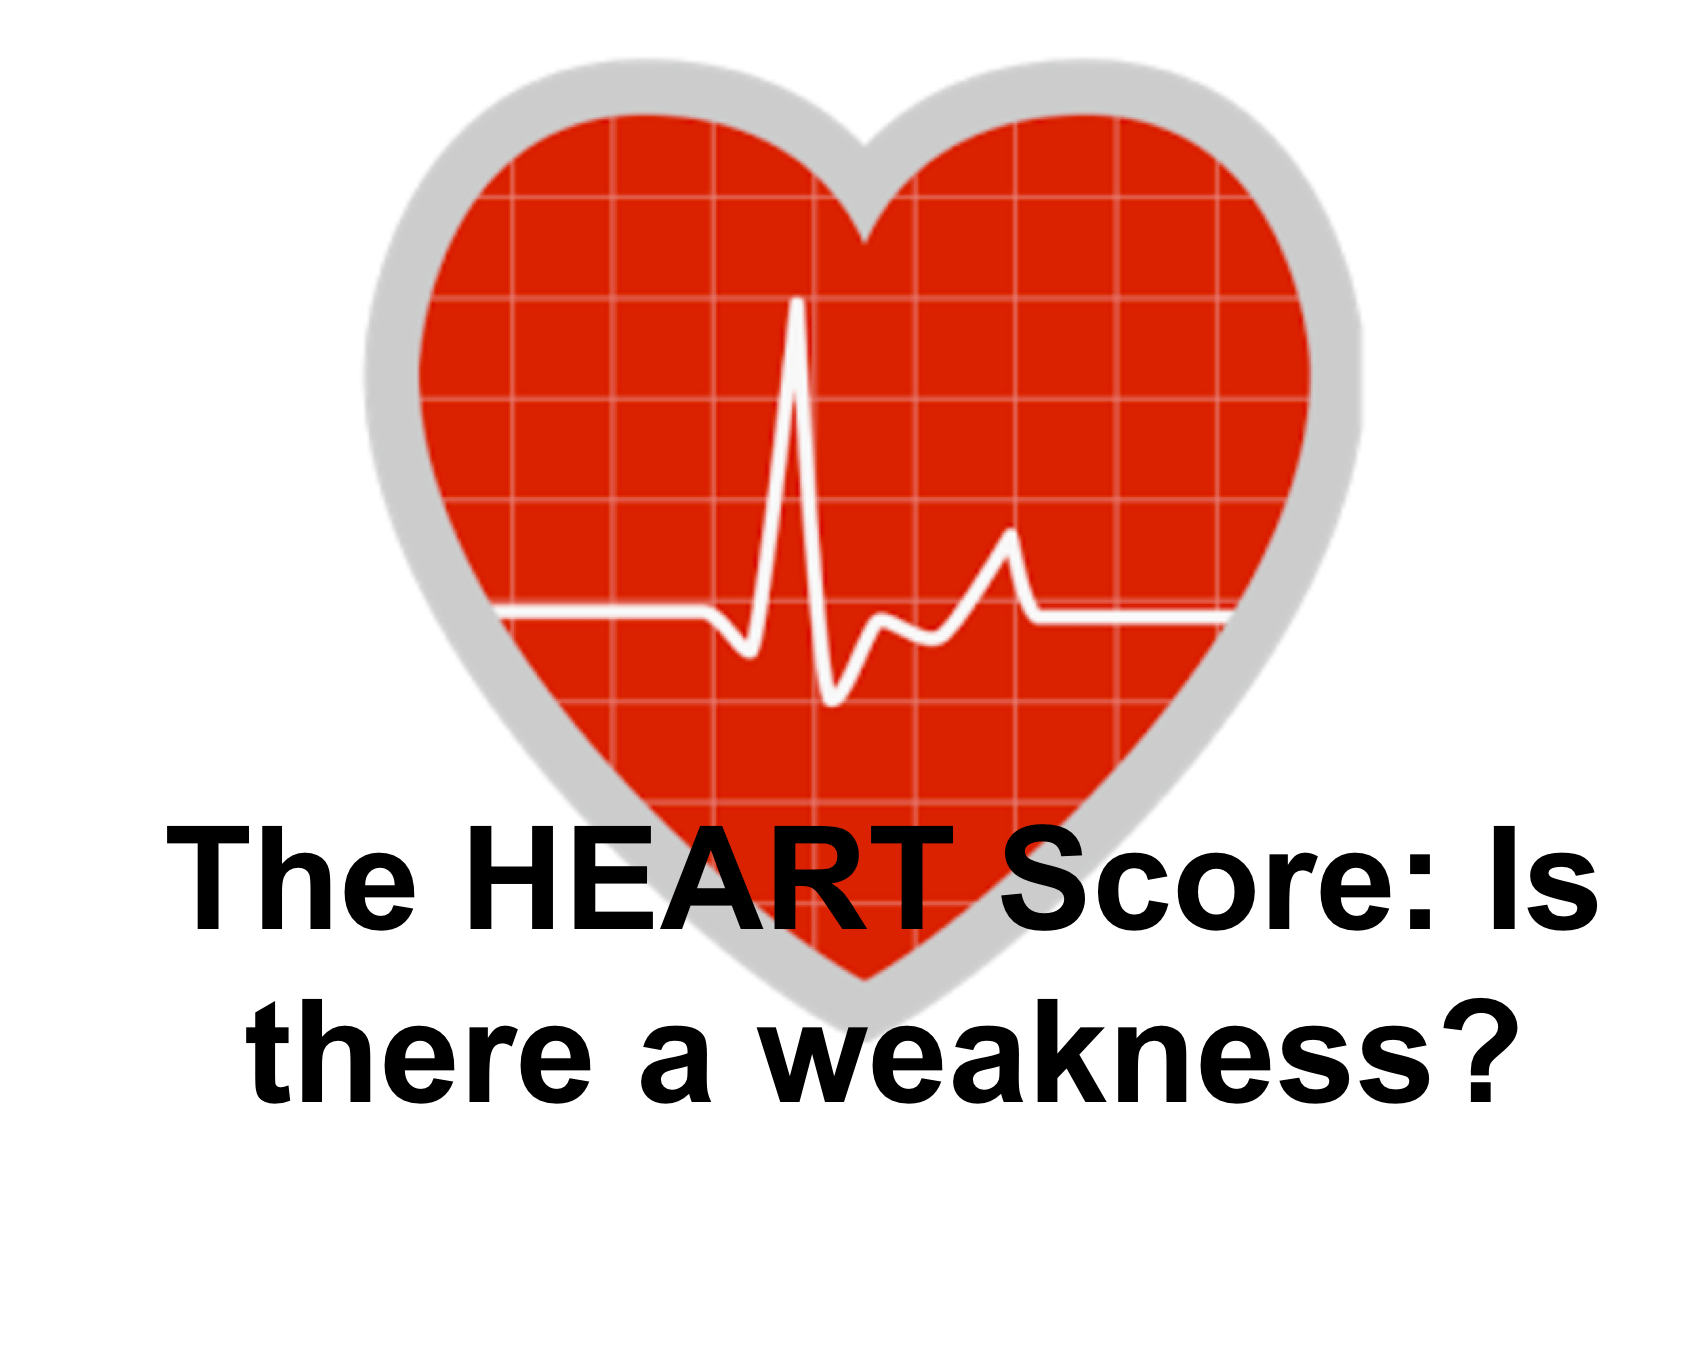 The Great and Powerful HEART Score: Does it have a weakness? - emdocs